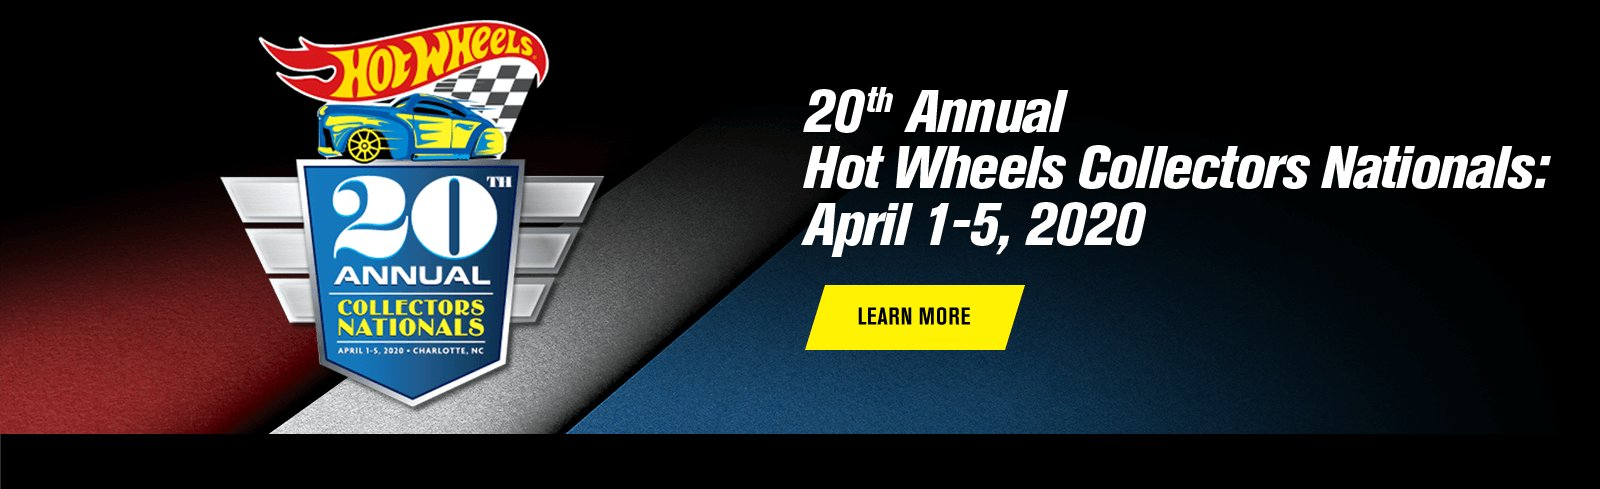 20th Annual Hot Wheels Collectors Nationals: April 1-5, 2020